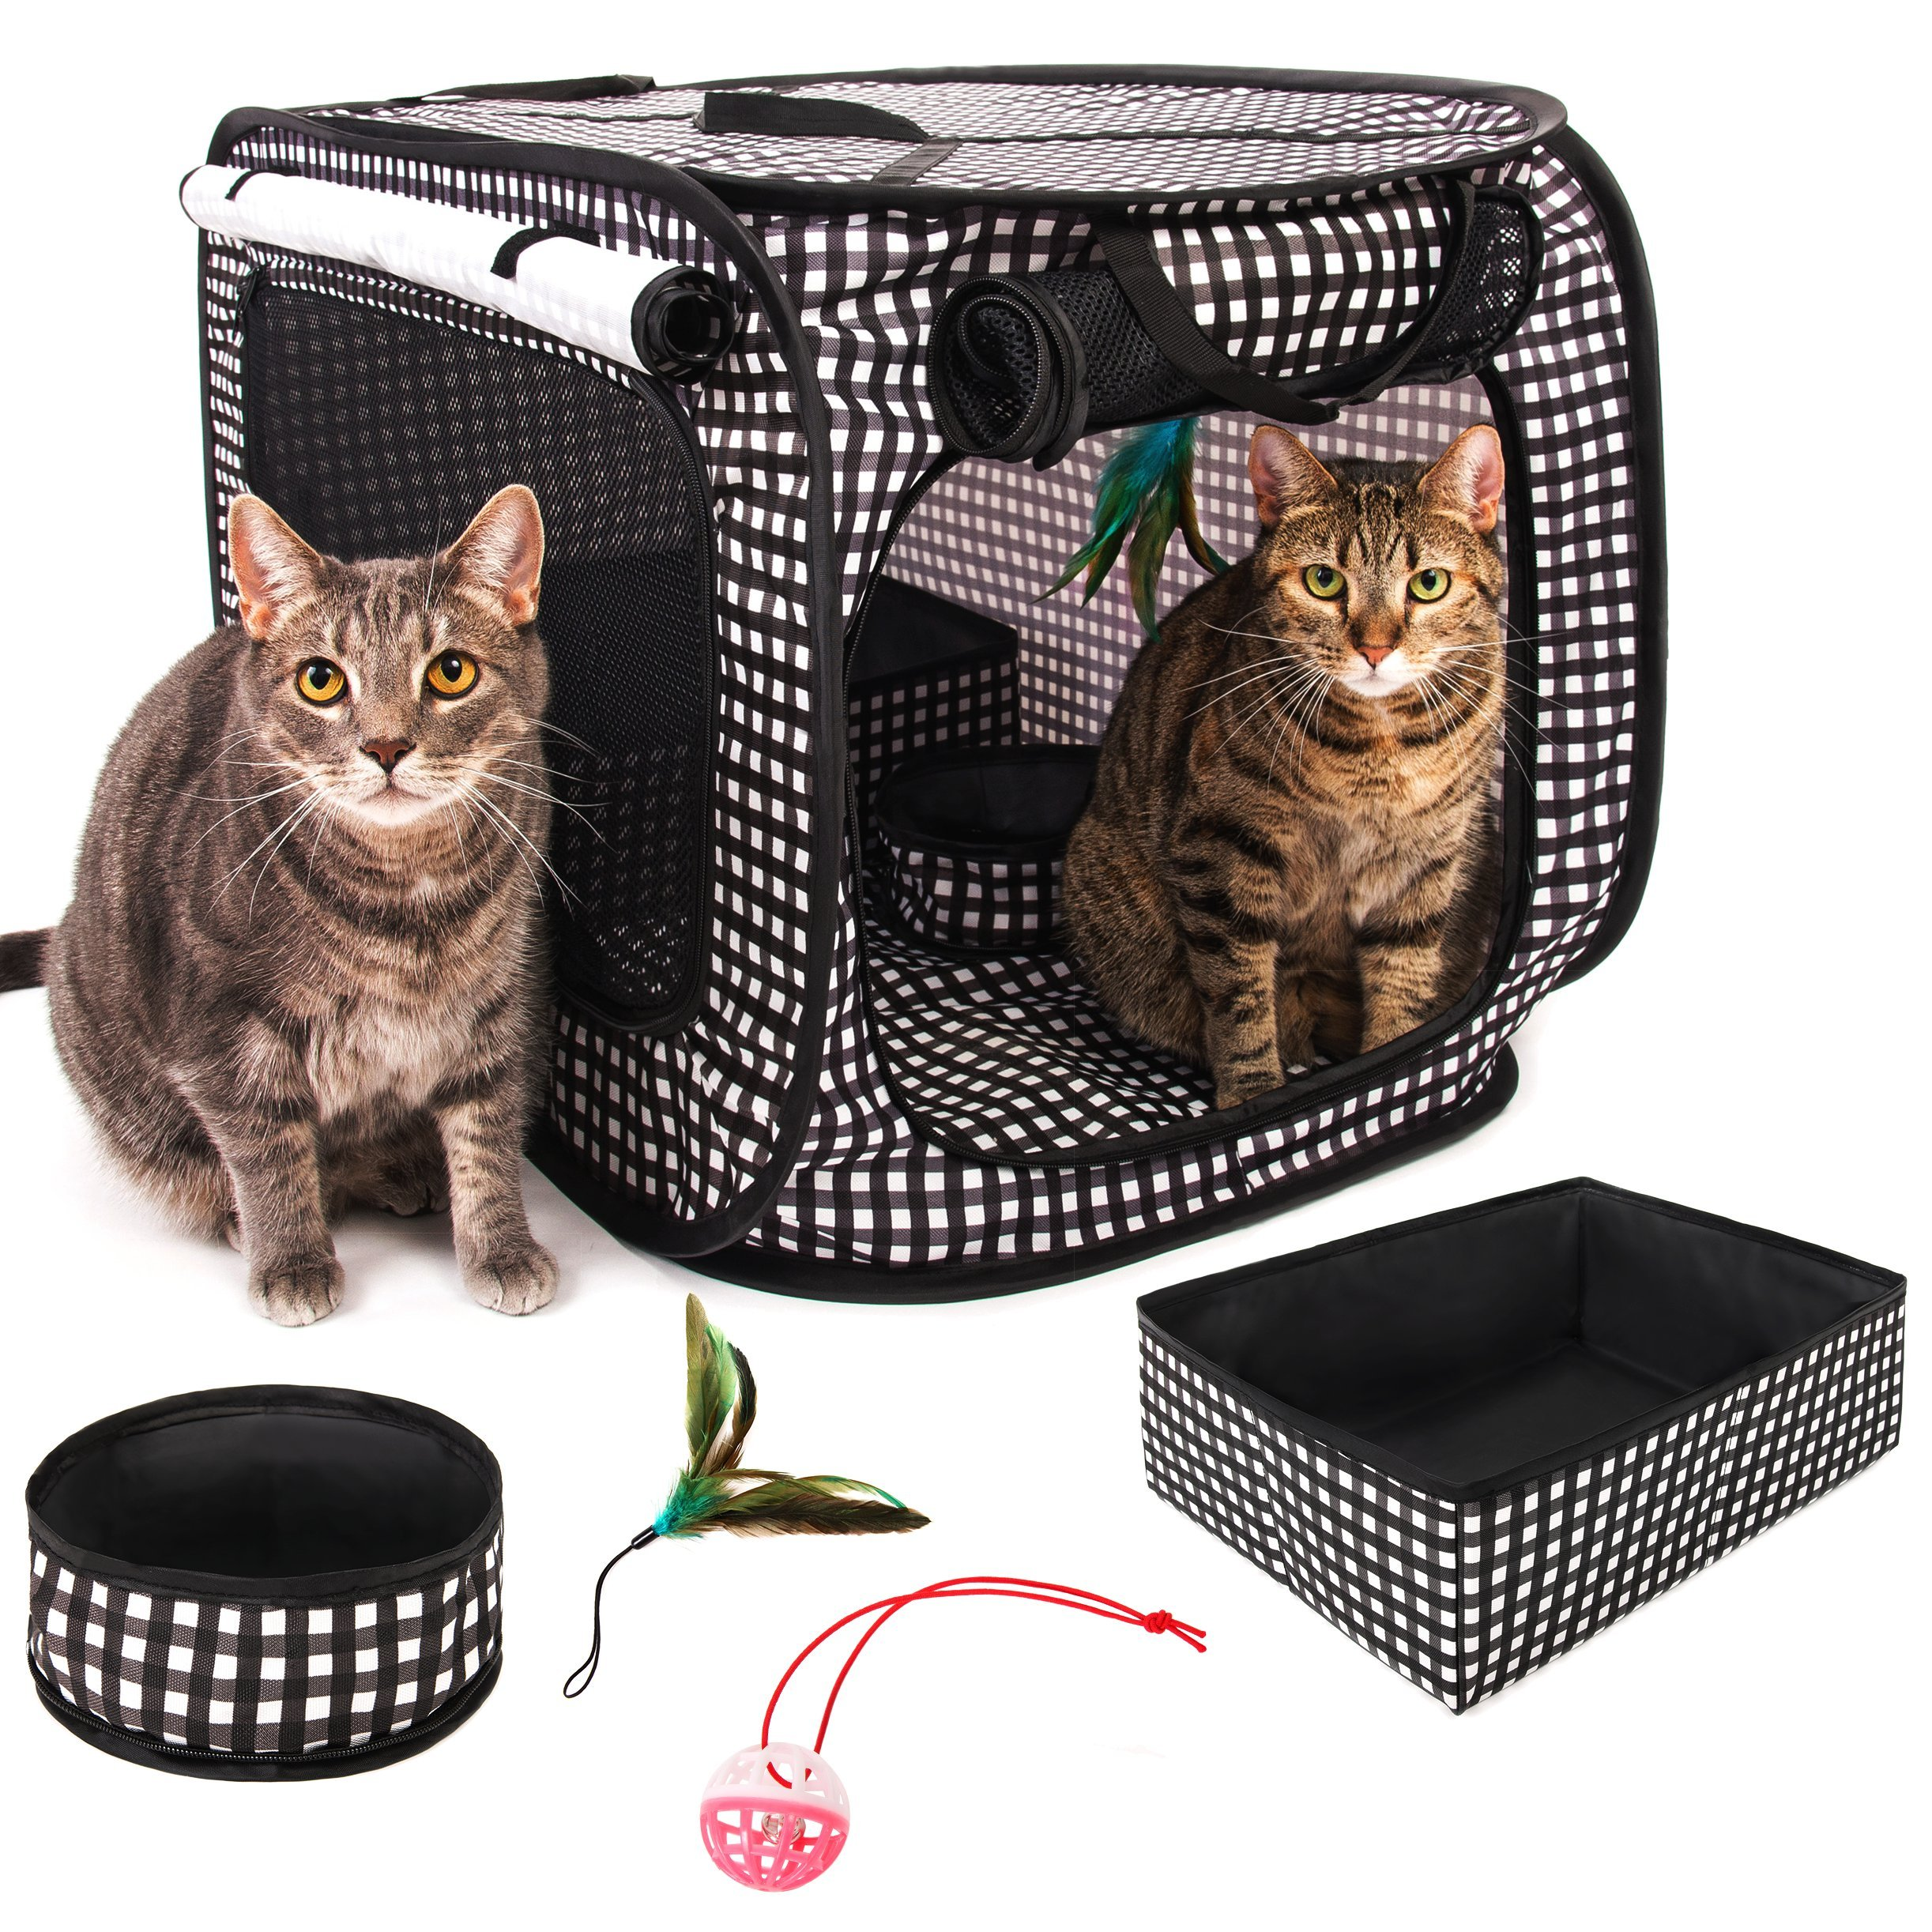 CHEERING PET, Cat Condo Cage: Portable Pop Up Pet Crate with Collapsible Litter Box, Foldable Feeding Bowl, Hanging Feather Teaser and Ball, Carrying Bag, Extra Large 32'' X 19'' X 19'' (Checker Board) by CHEERING PET